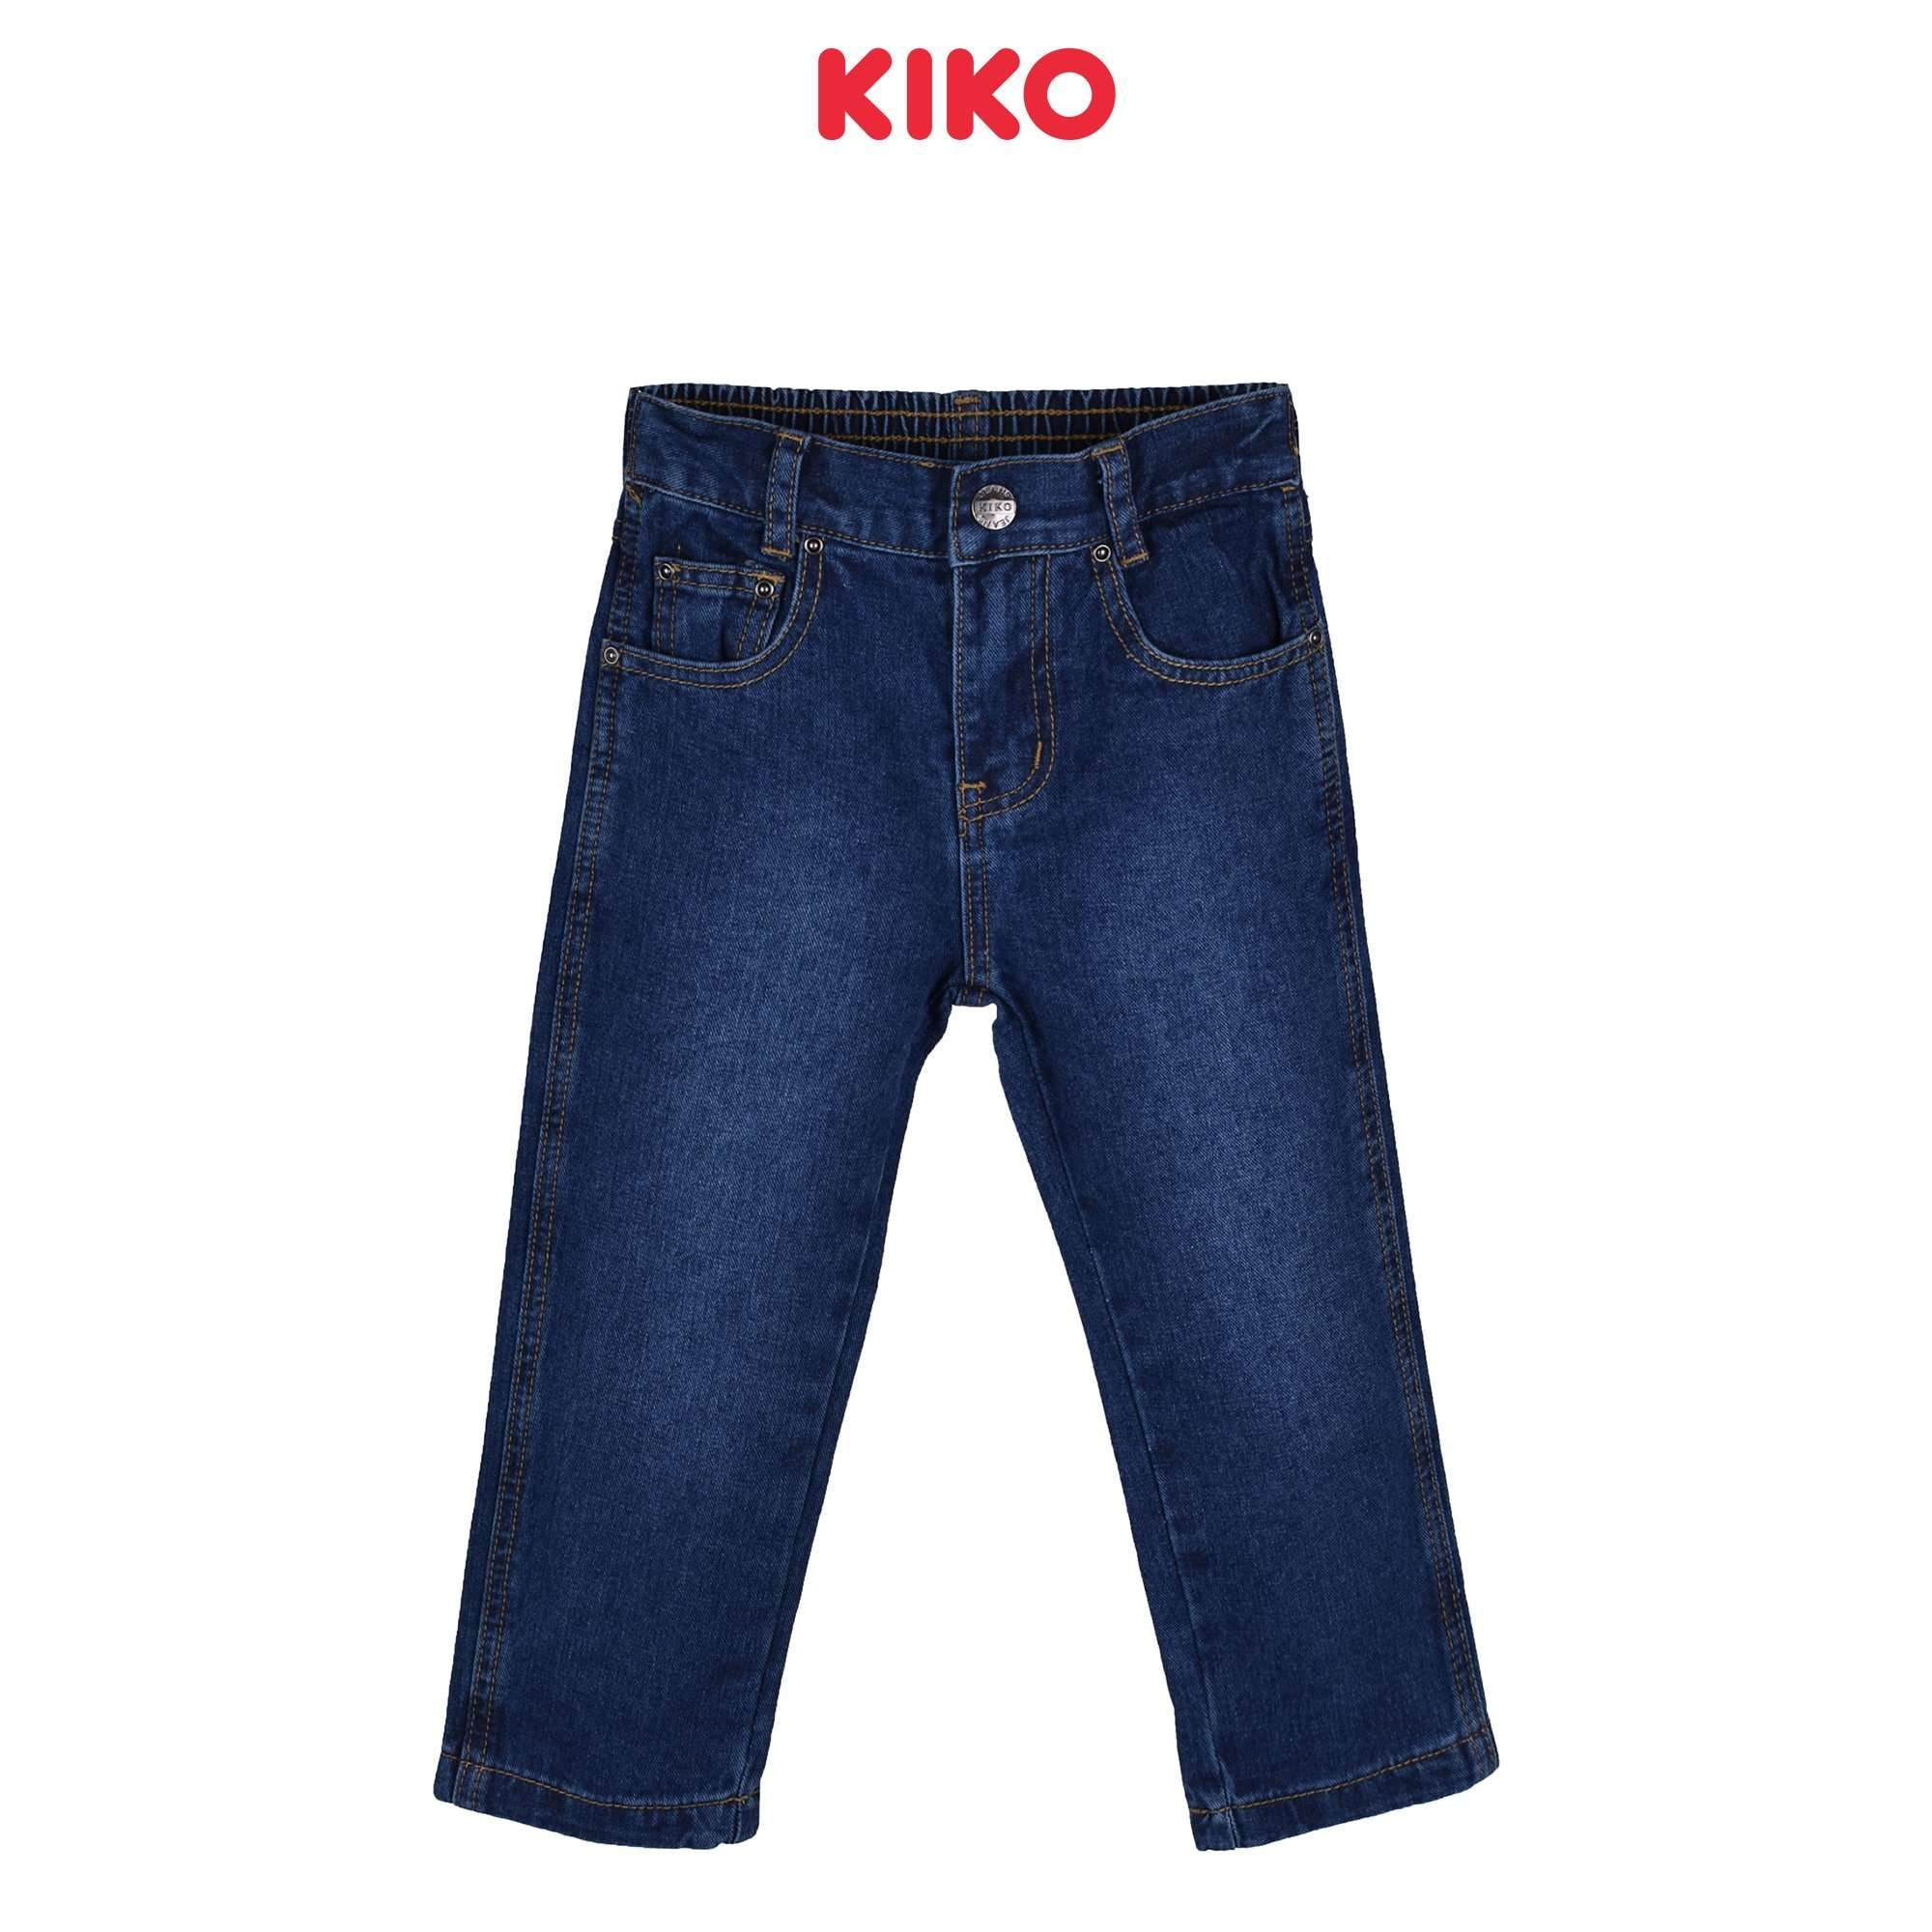 KIKO Boy Jeans Regular Fit 130055-211-L5 : Buy KIKO online at CMG.MY